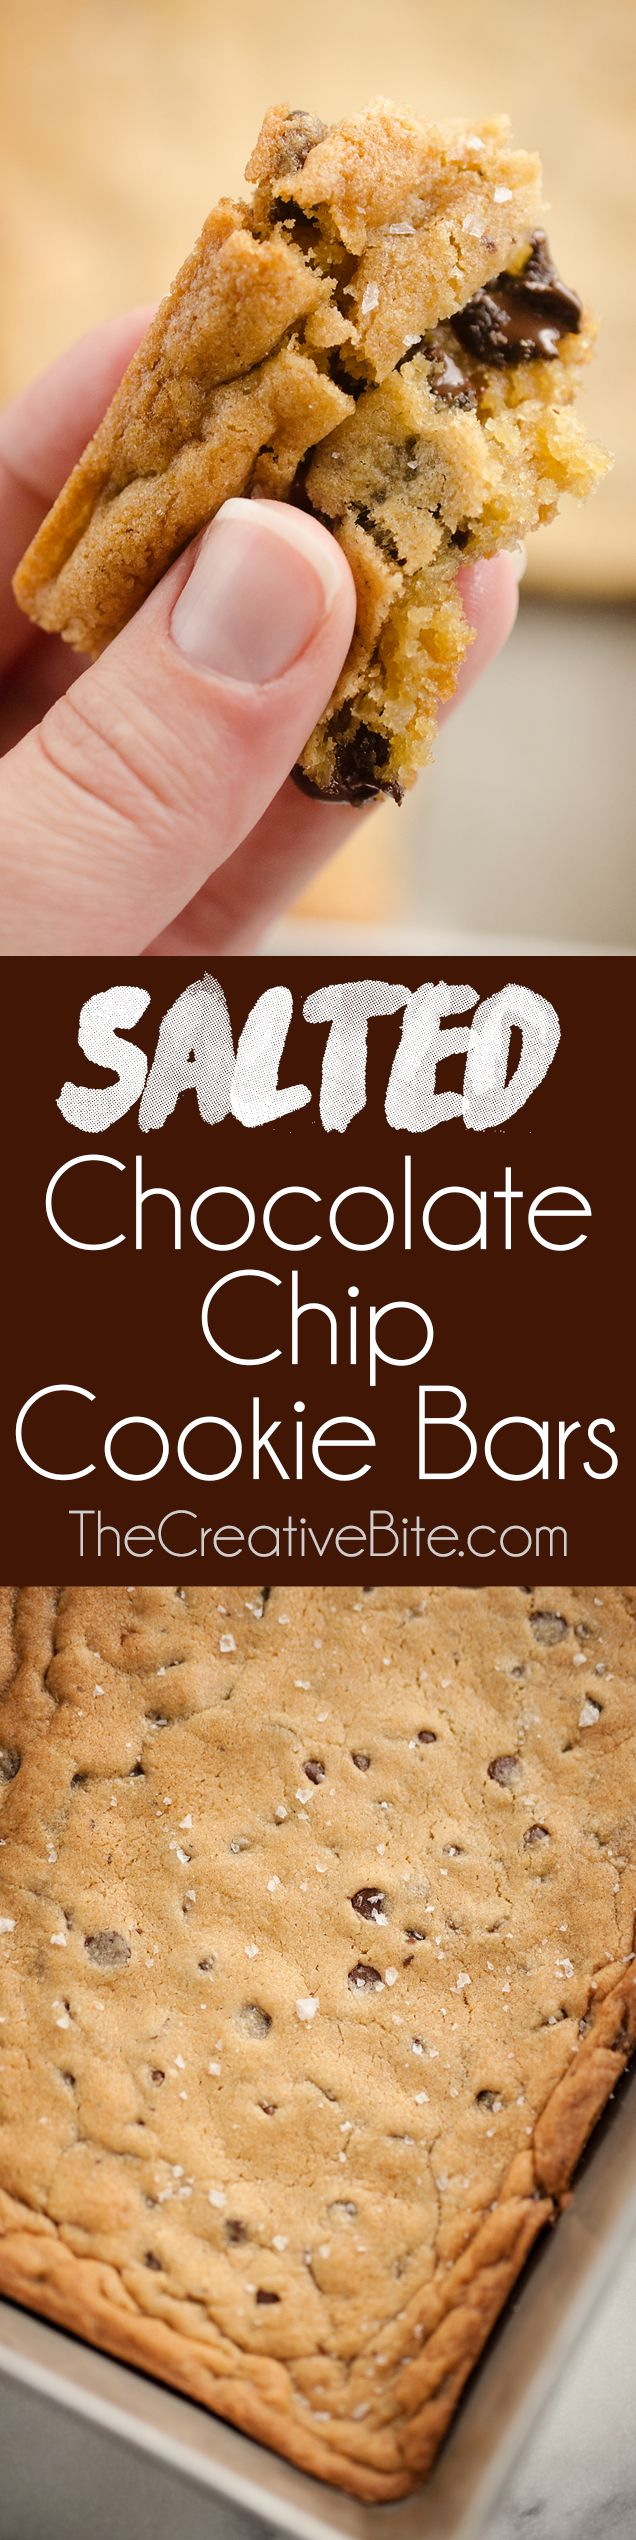 Salted Chocolate Chip Cookie Bars are a traditional blonde brownie with a sweet and salty twist for a quick and easy dessert the whole family will love.#Chocolate #Dessert